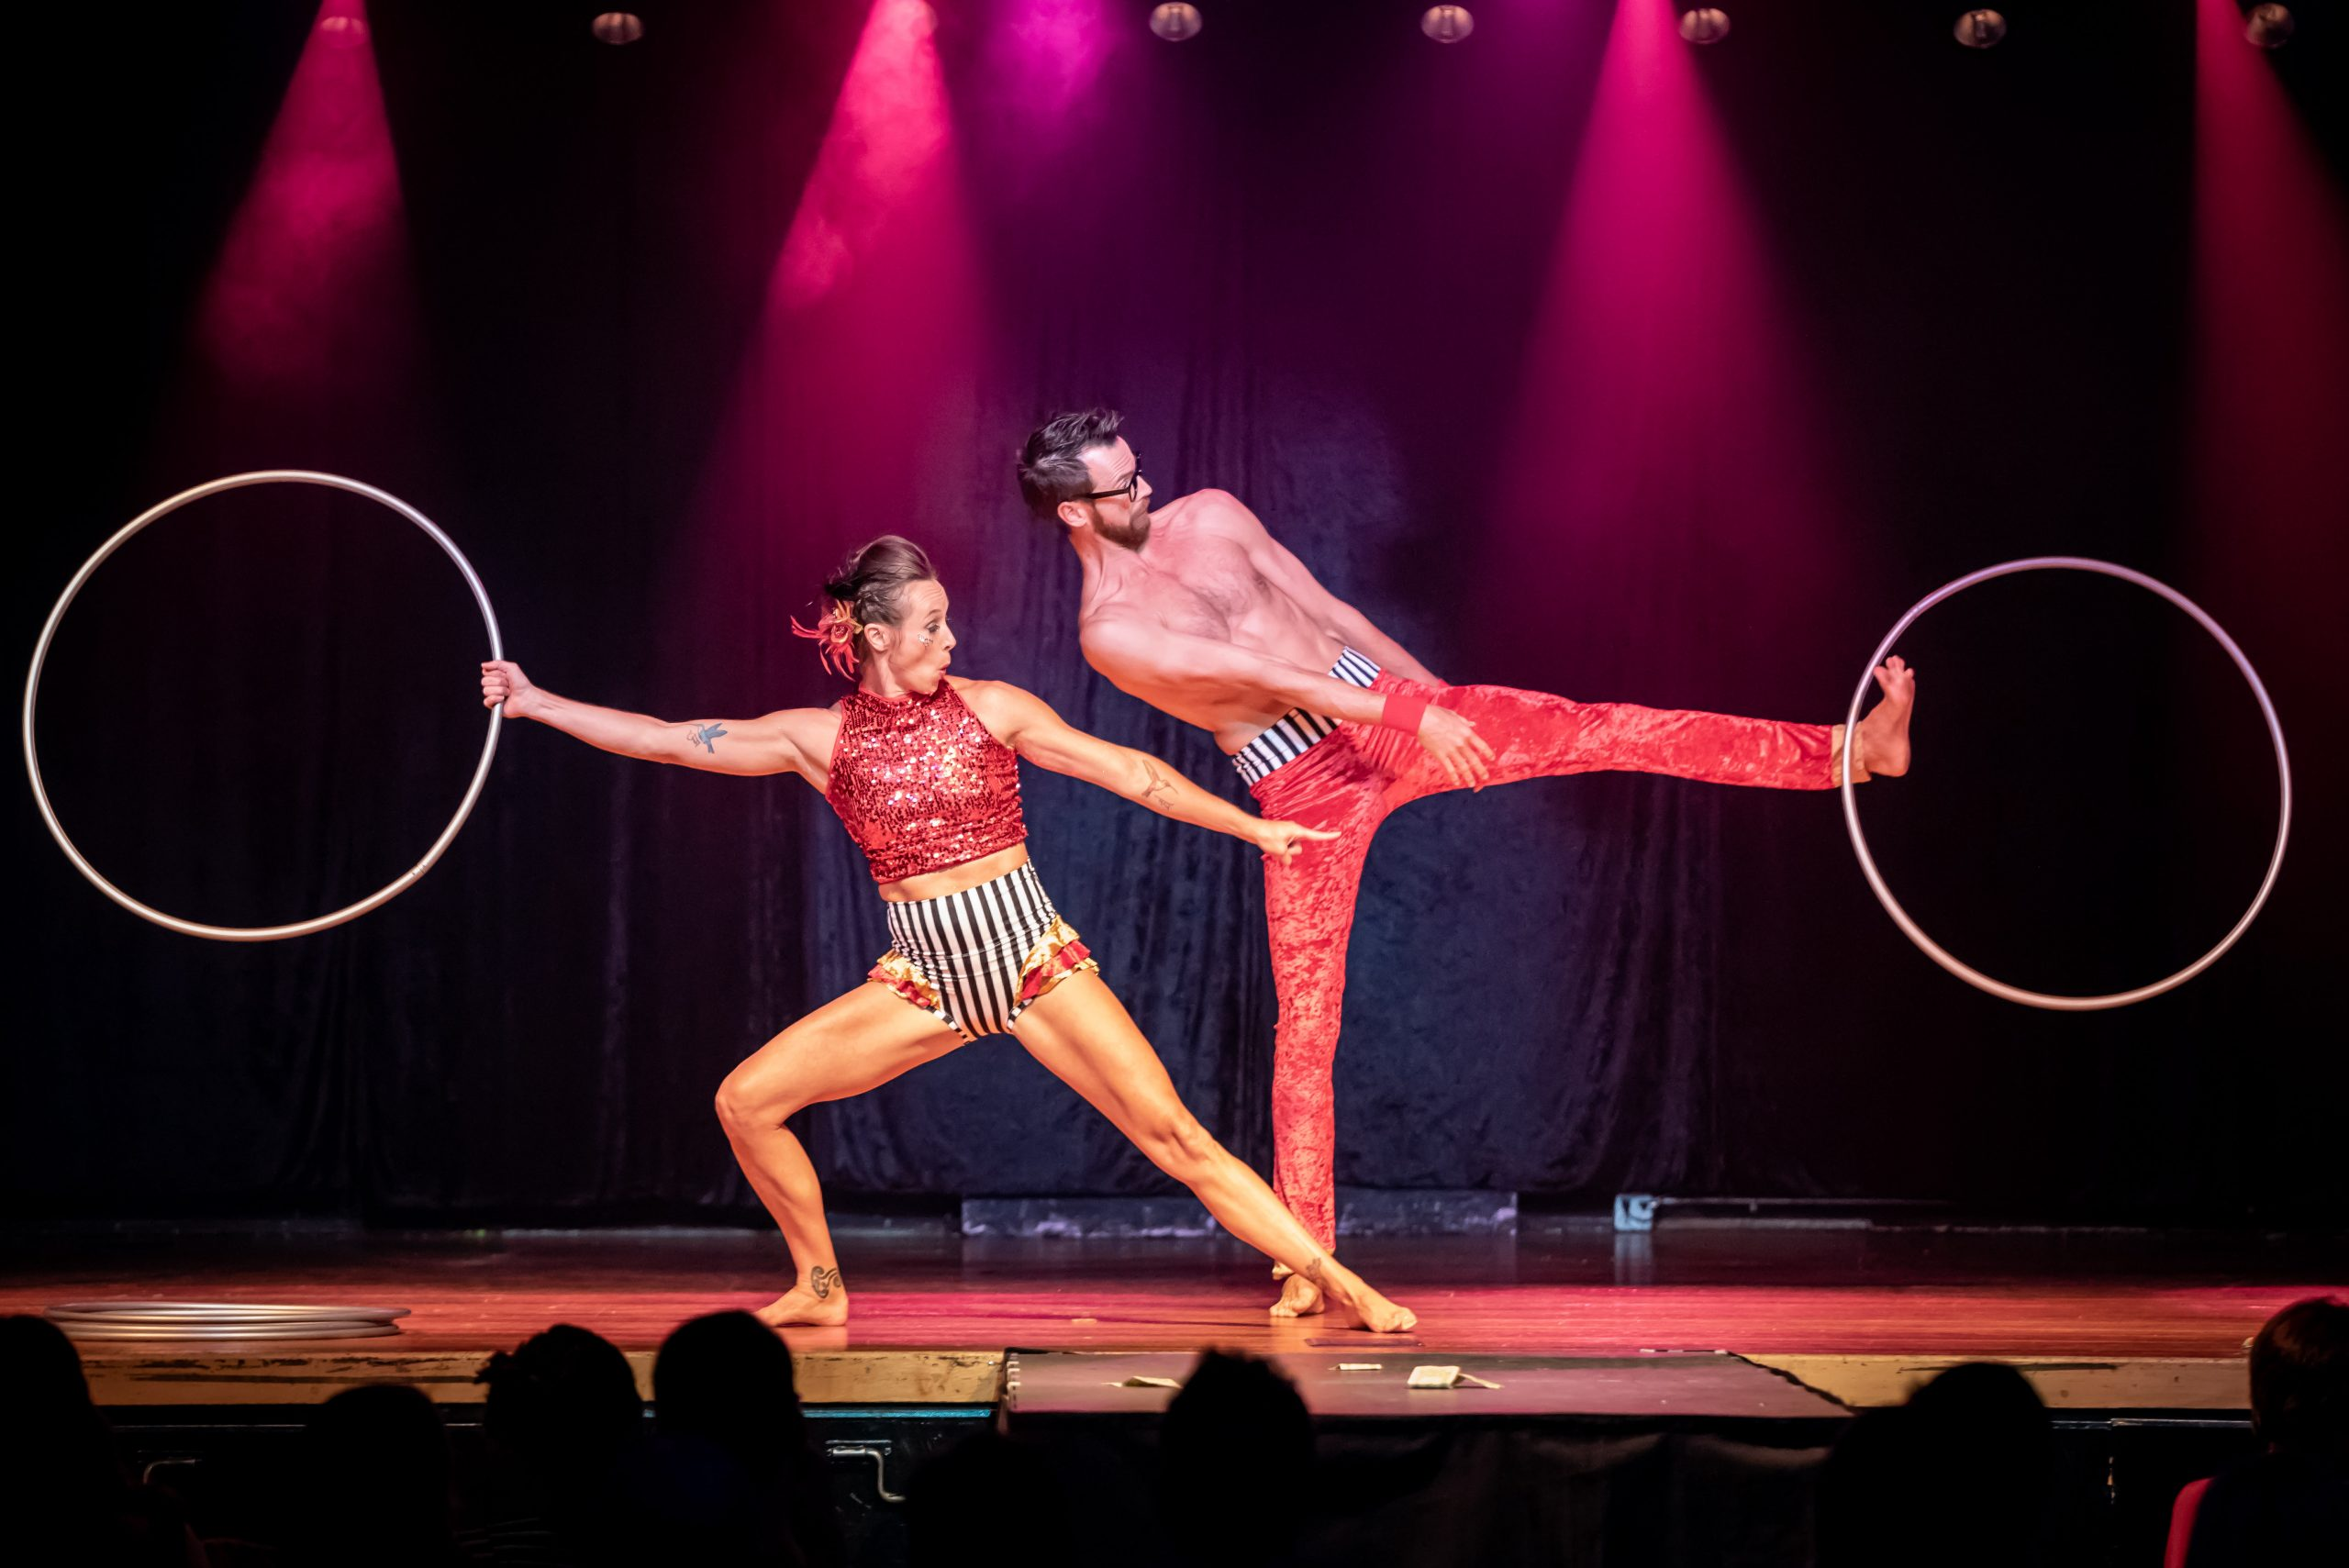 Hoop performance act by two performers at a burlesque show in Ashland Oregon